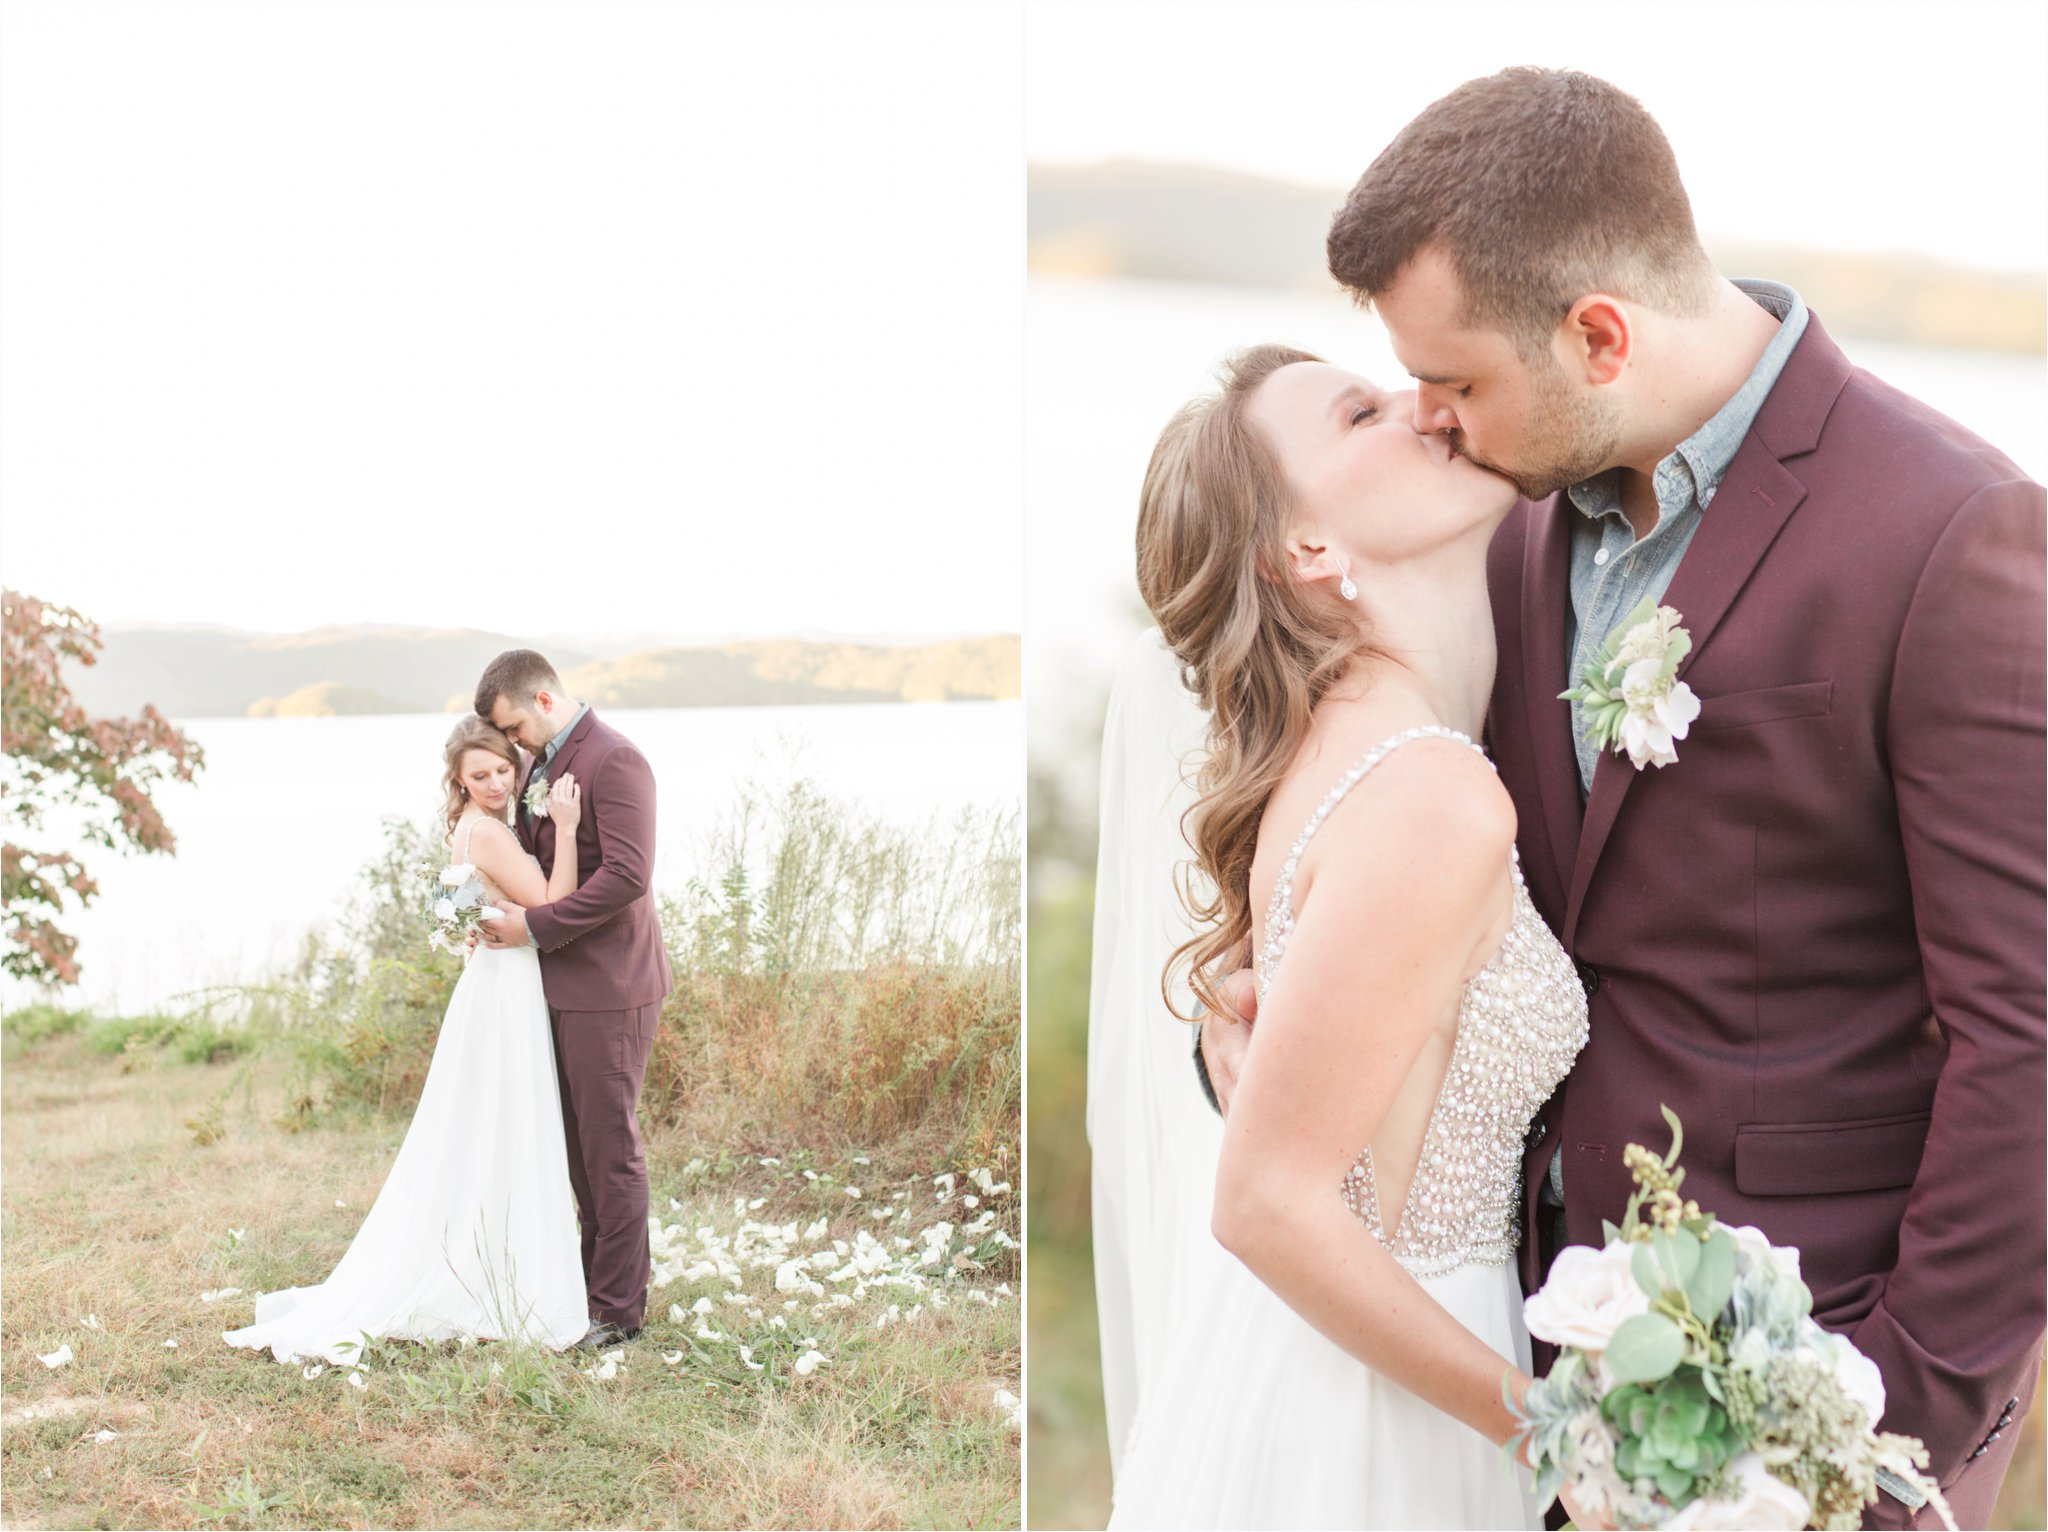 Lake Jocassee Wedding | South Carolina Wedding Photographer | Christa Rene Photography